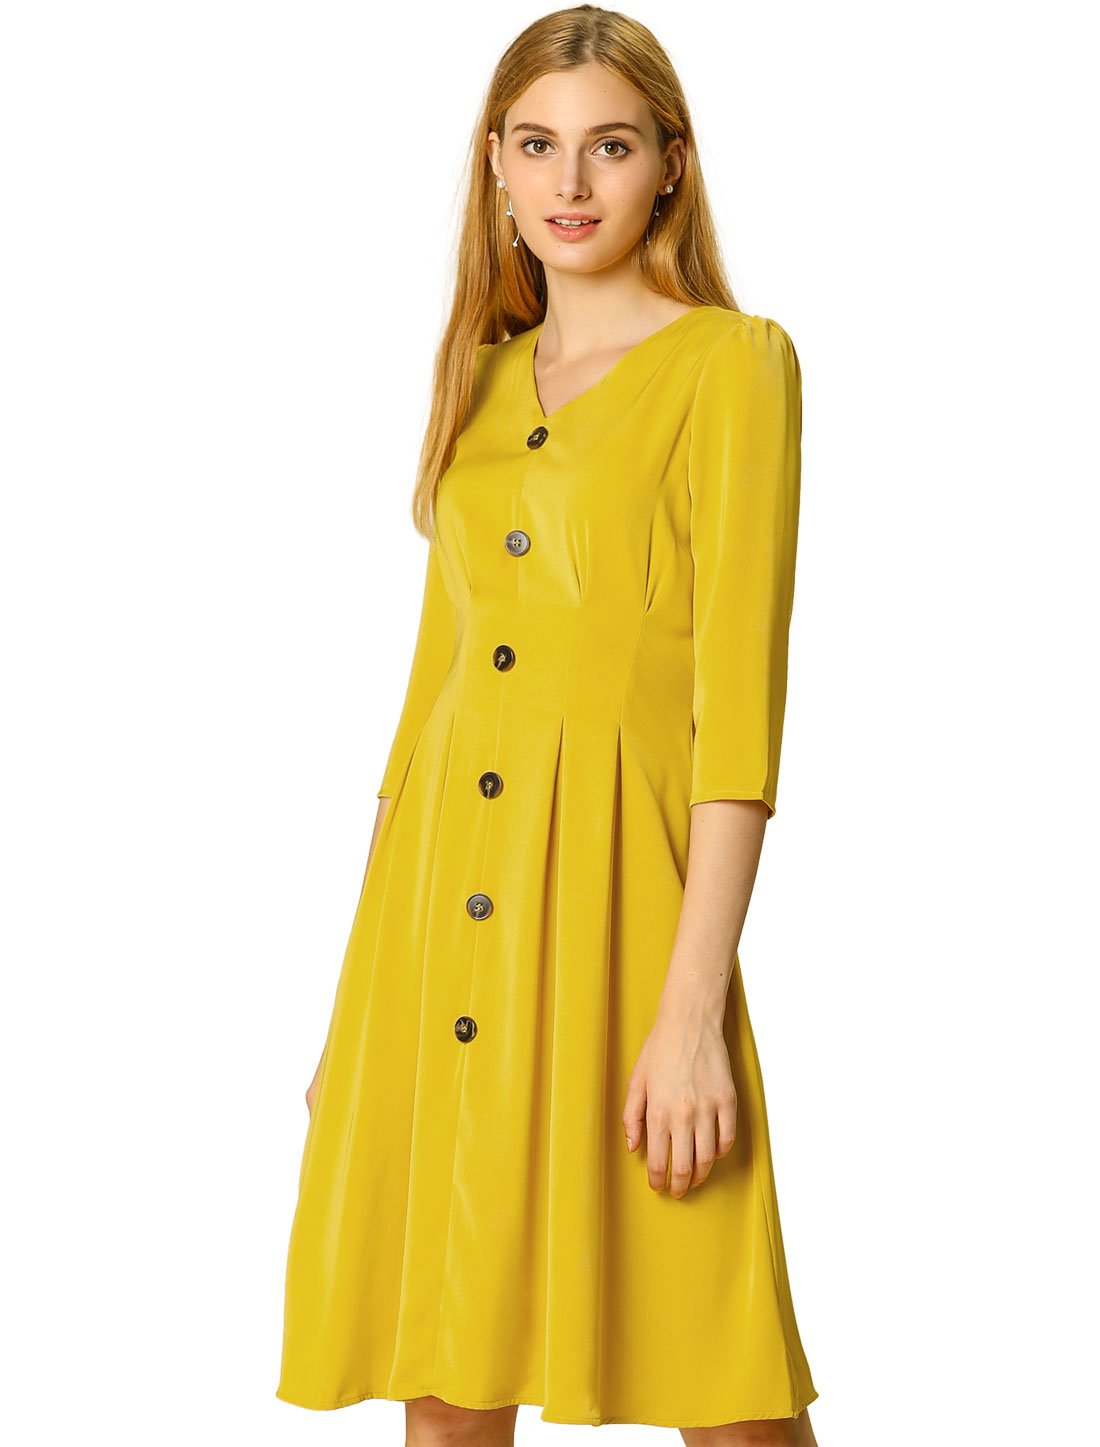 Allegra K Women's V Neck Belted Pleated A-line Dress Yellow XL (US 18)